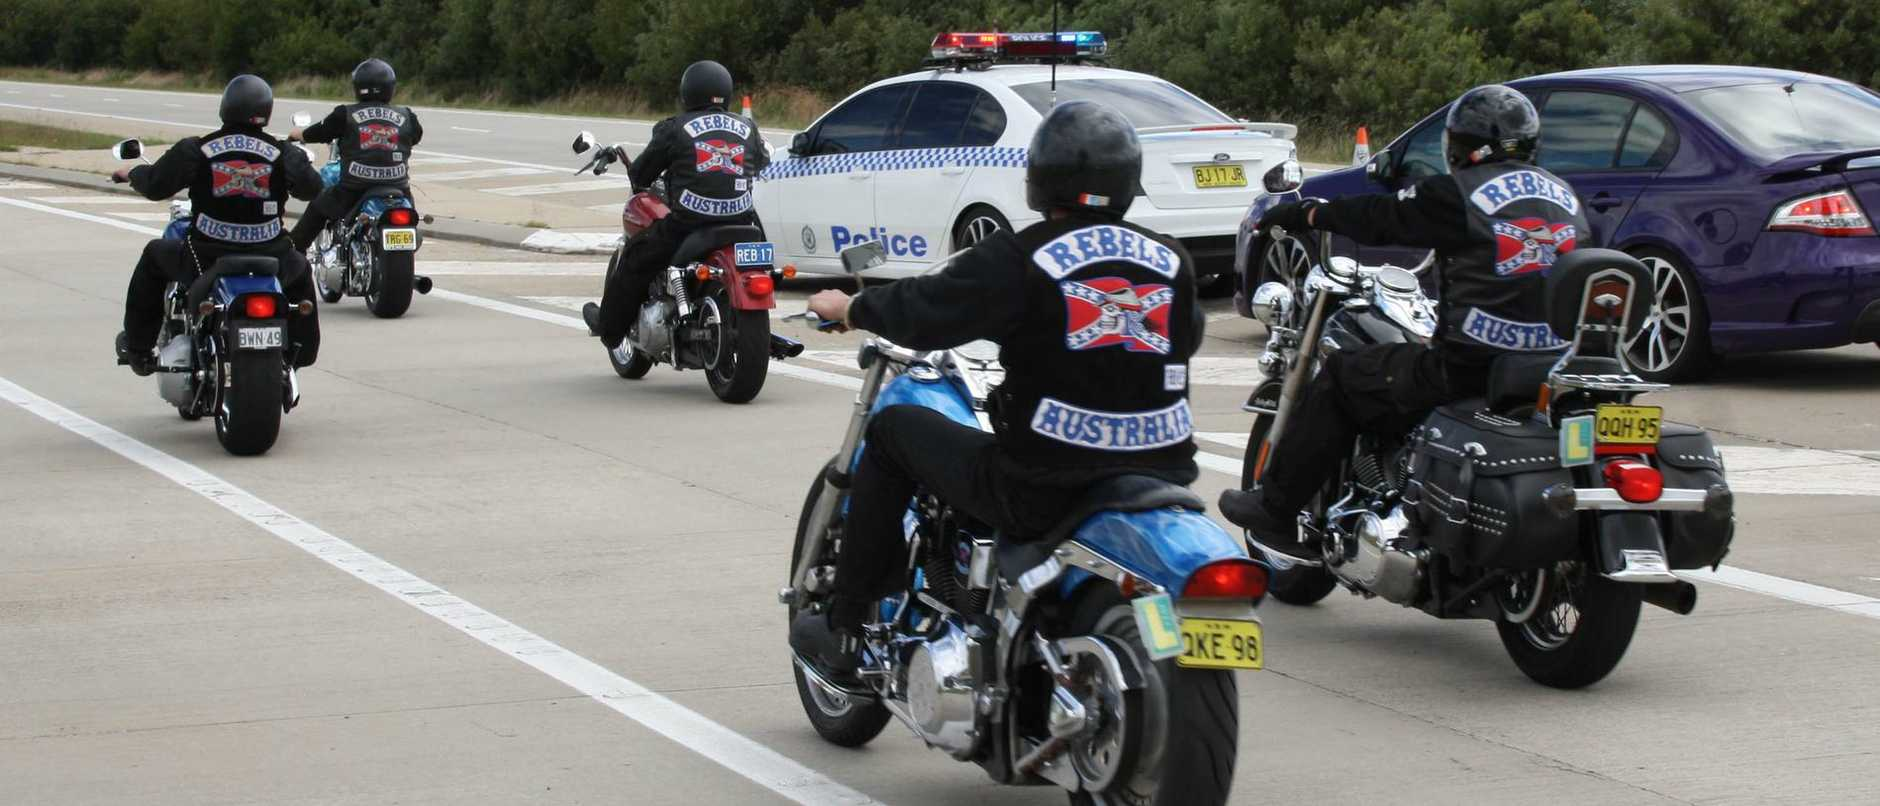 The legal question now will come down to how far police can define what constitutes a suspicion or intelligence of future serious crime to warrant shaking up bikie club houses and restrict member movements.